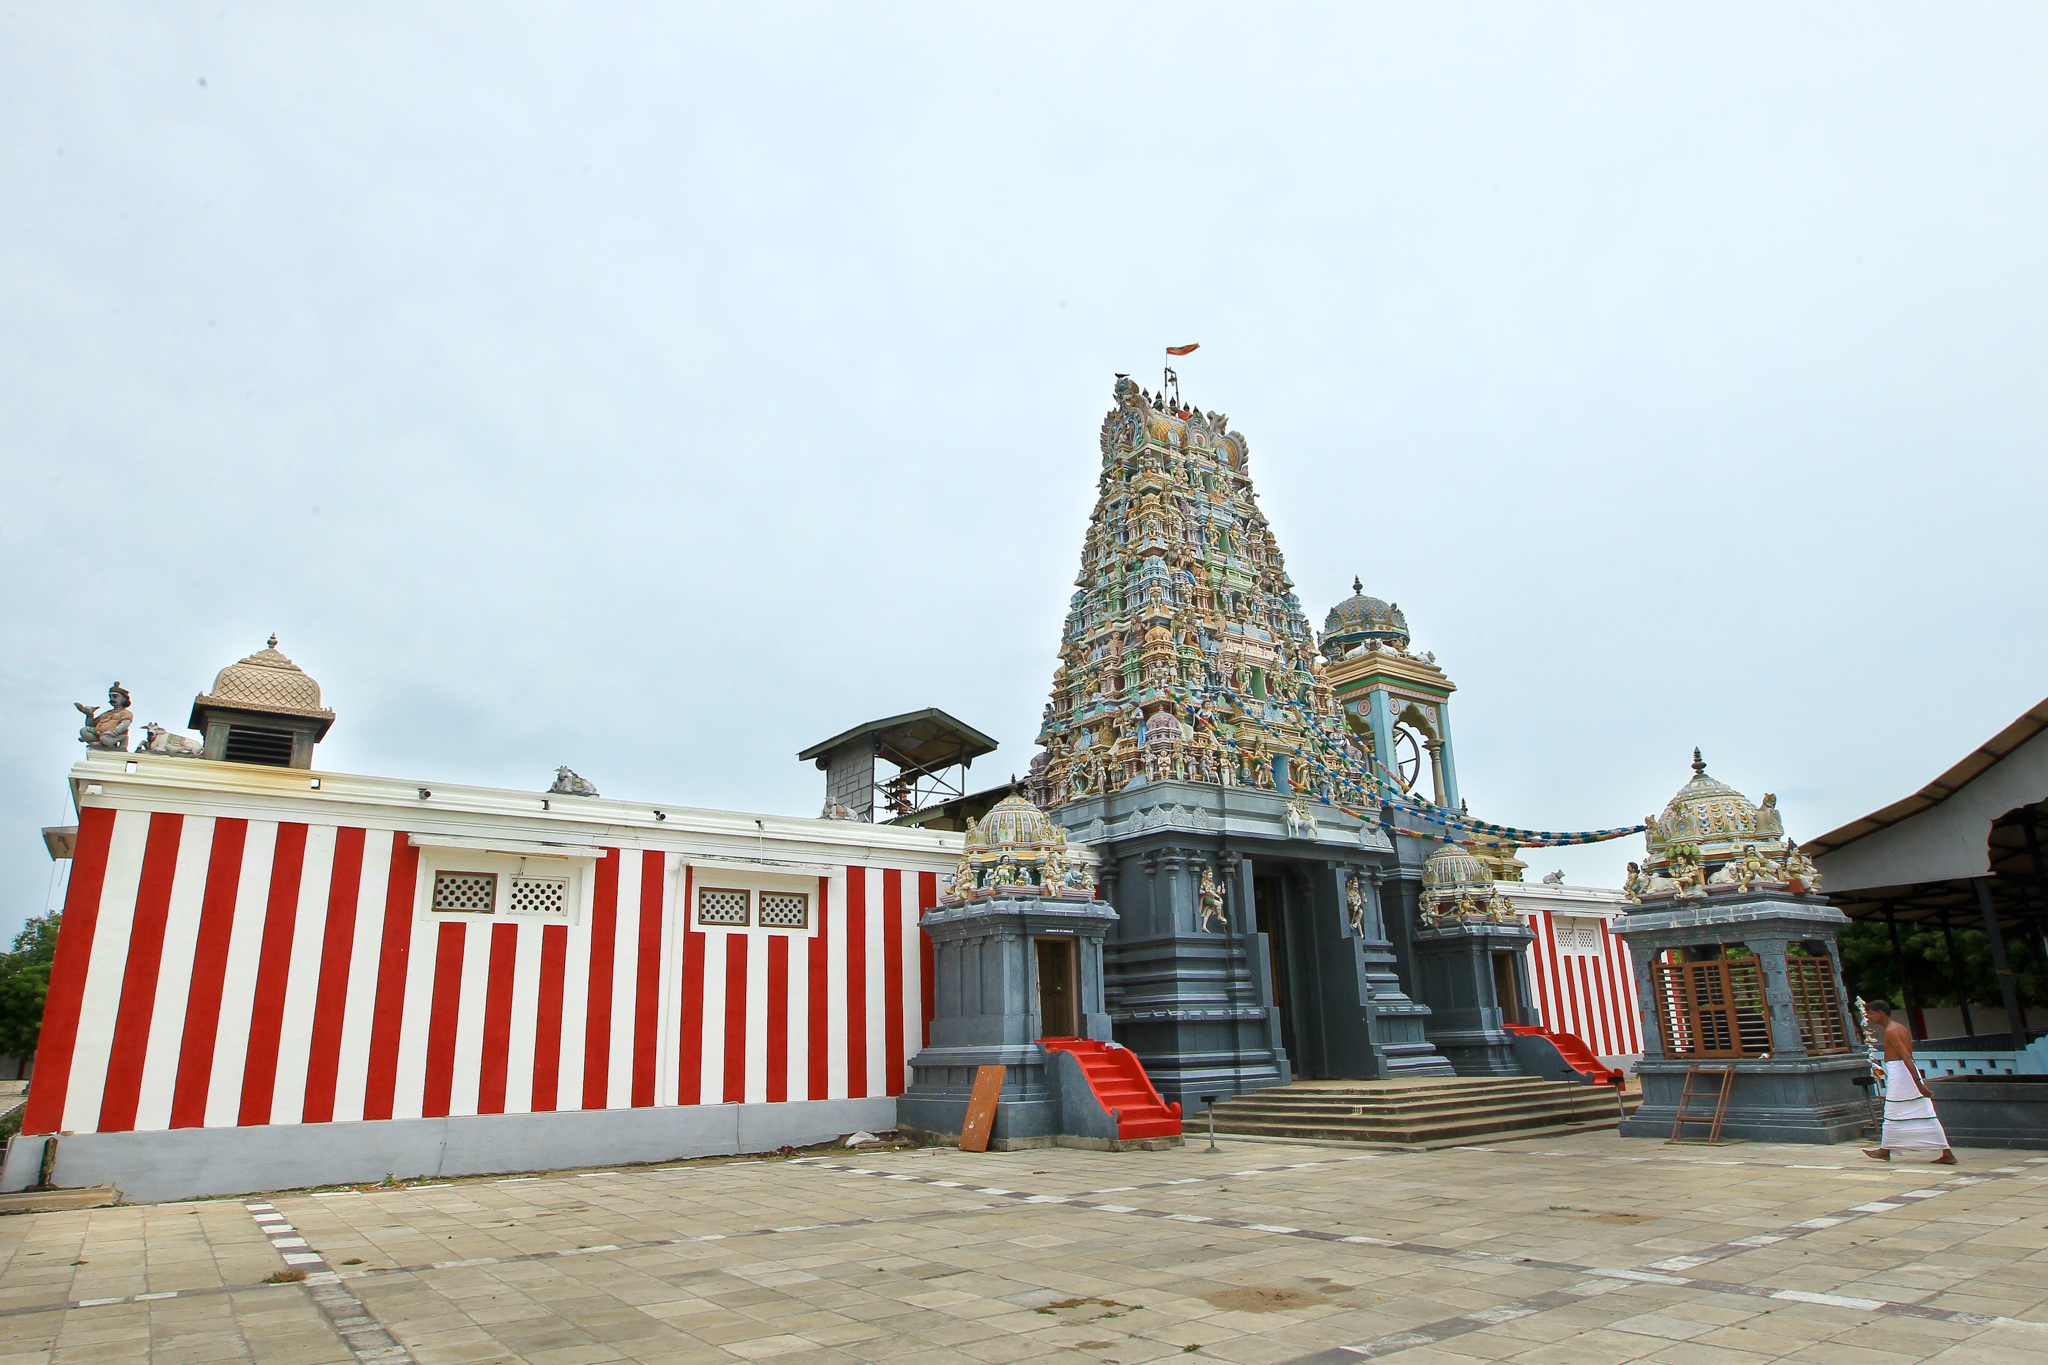 Thiruketheeswaram is a kovil in Mannar